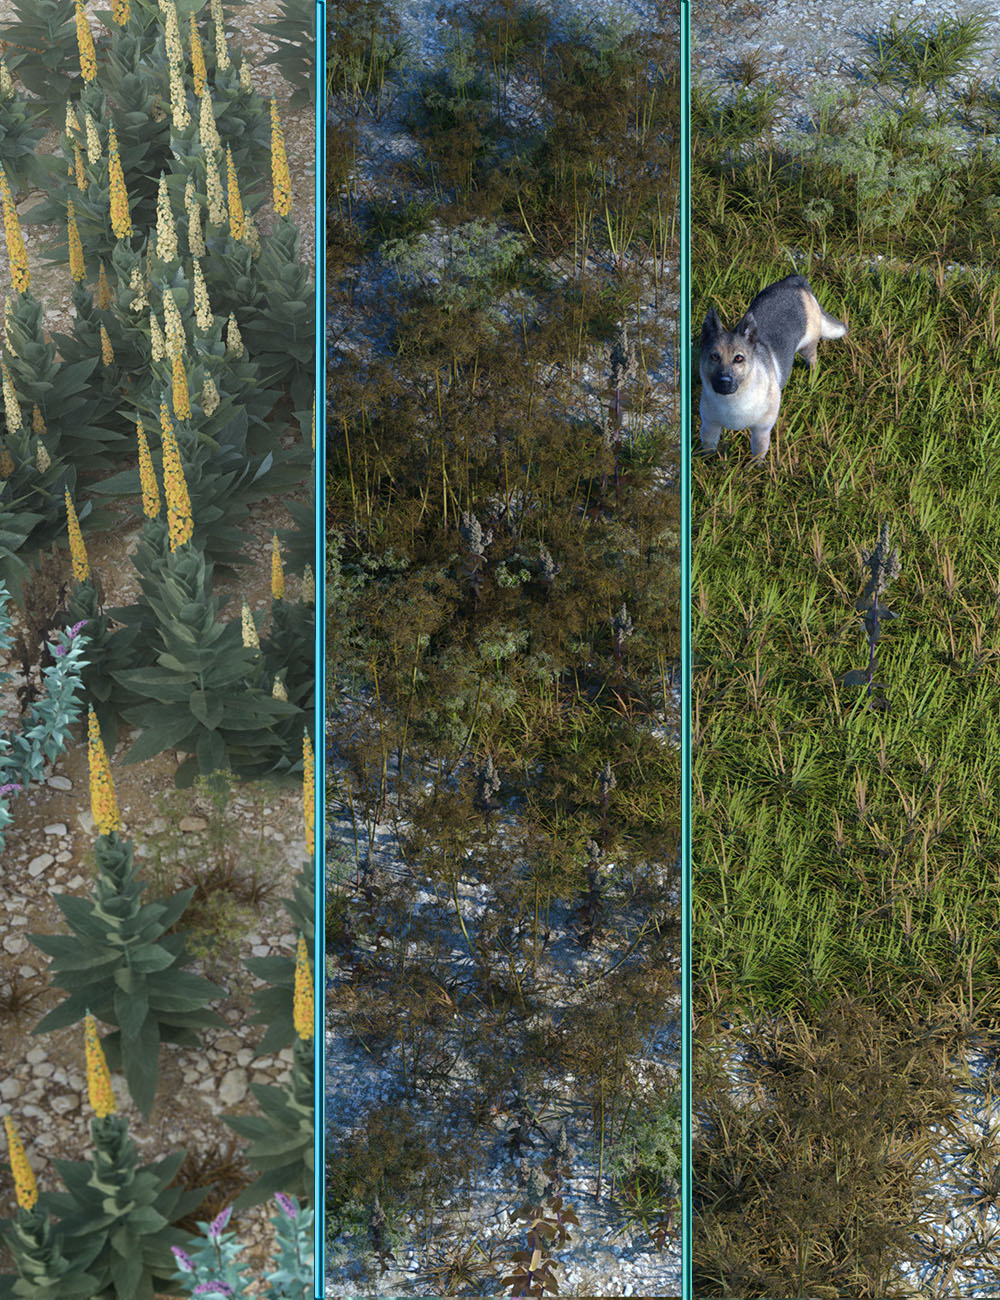 Wasteland Plants and Weeds - Low Resolution Instant Ecosystems by: MartinJFrost, 3D Models by Daz 3D